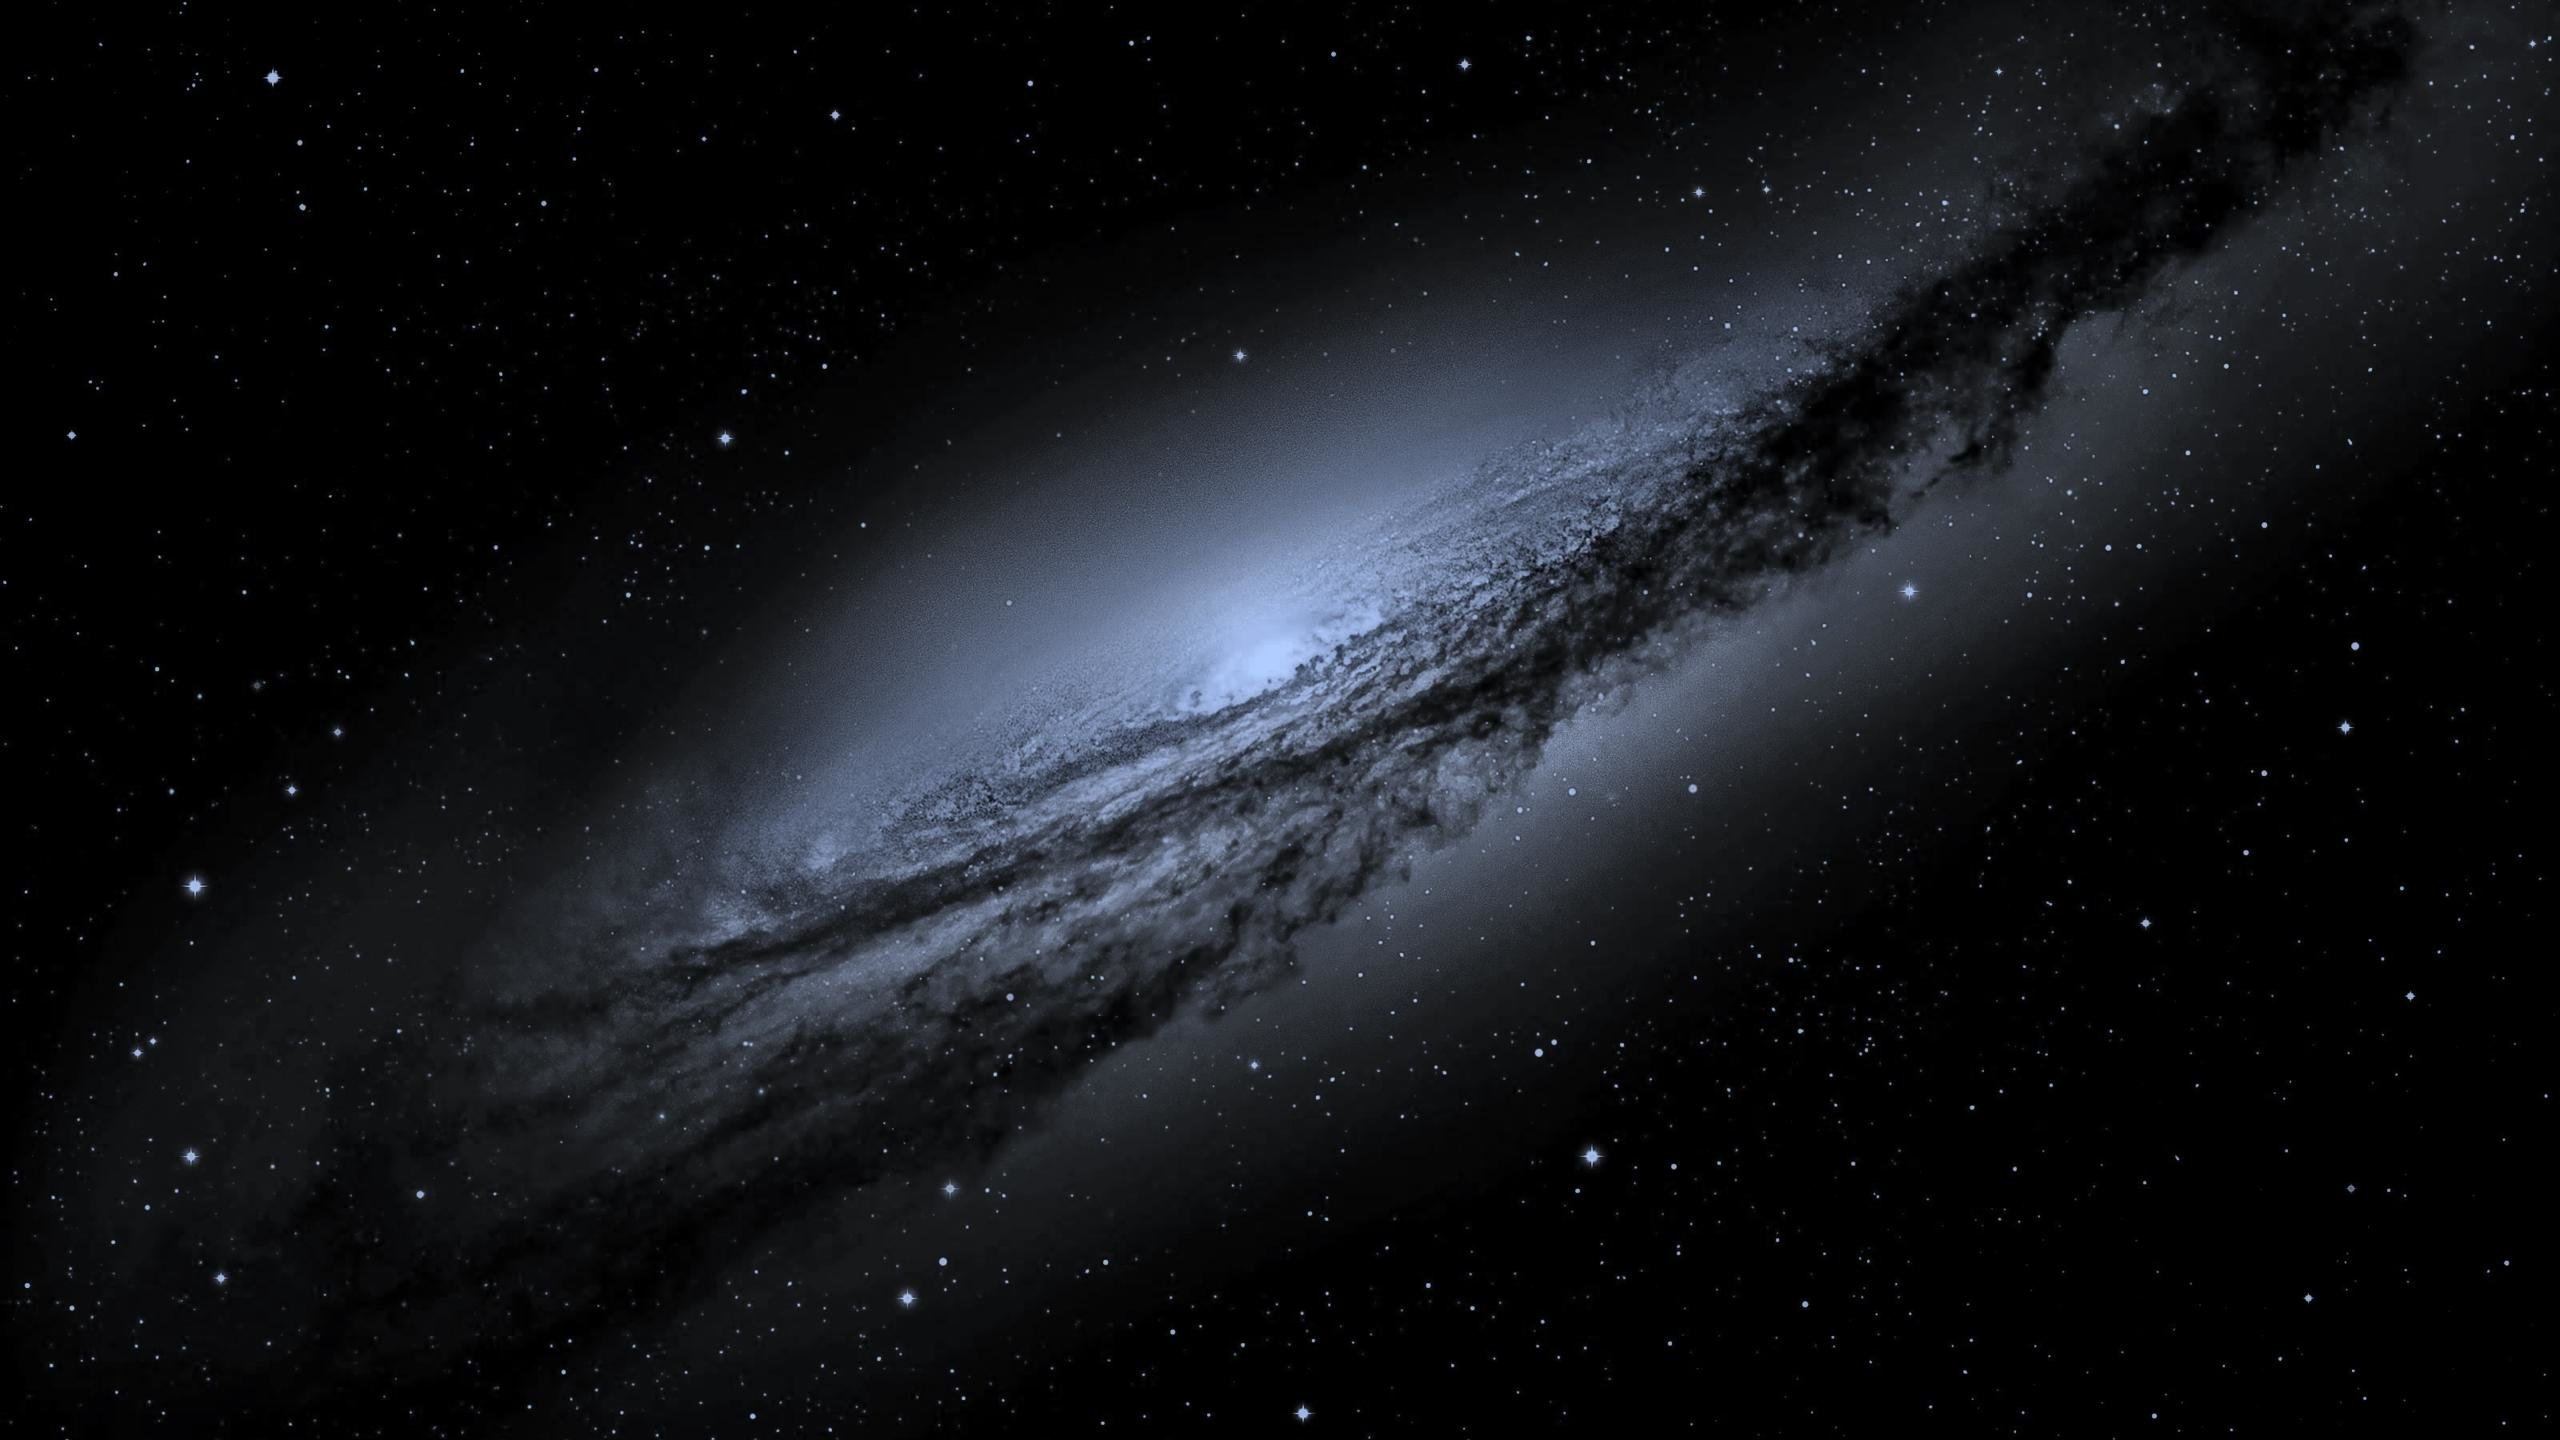 galaxy background hd 2560x1440 443821